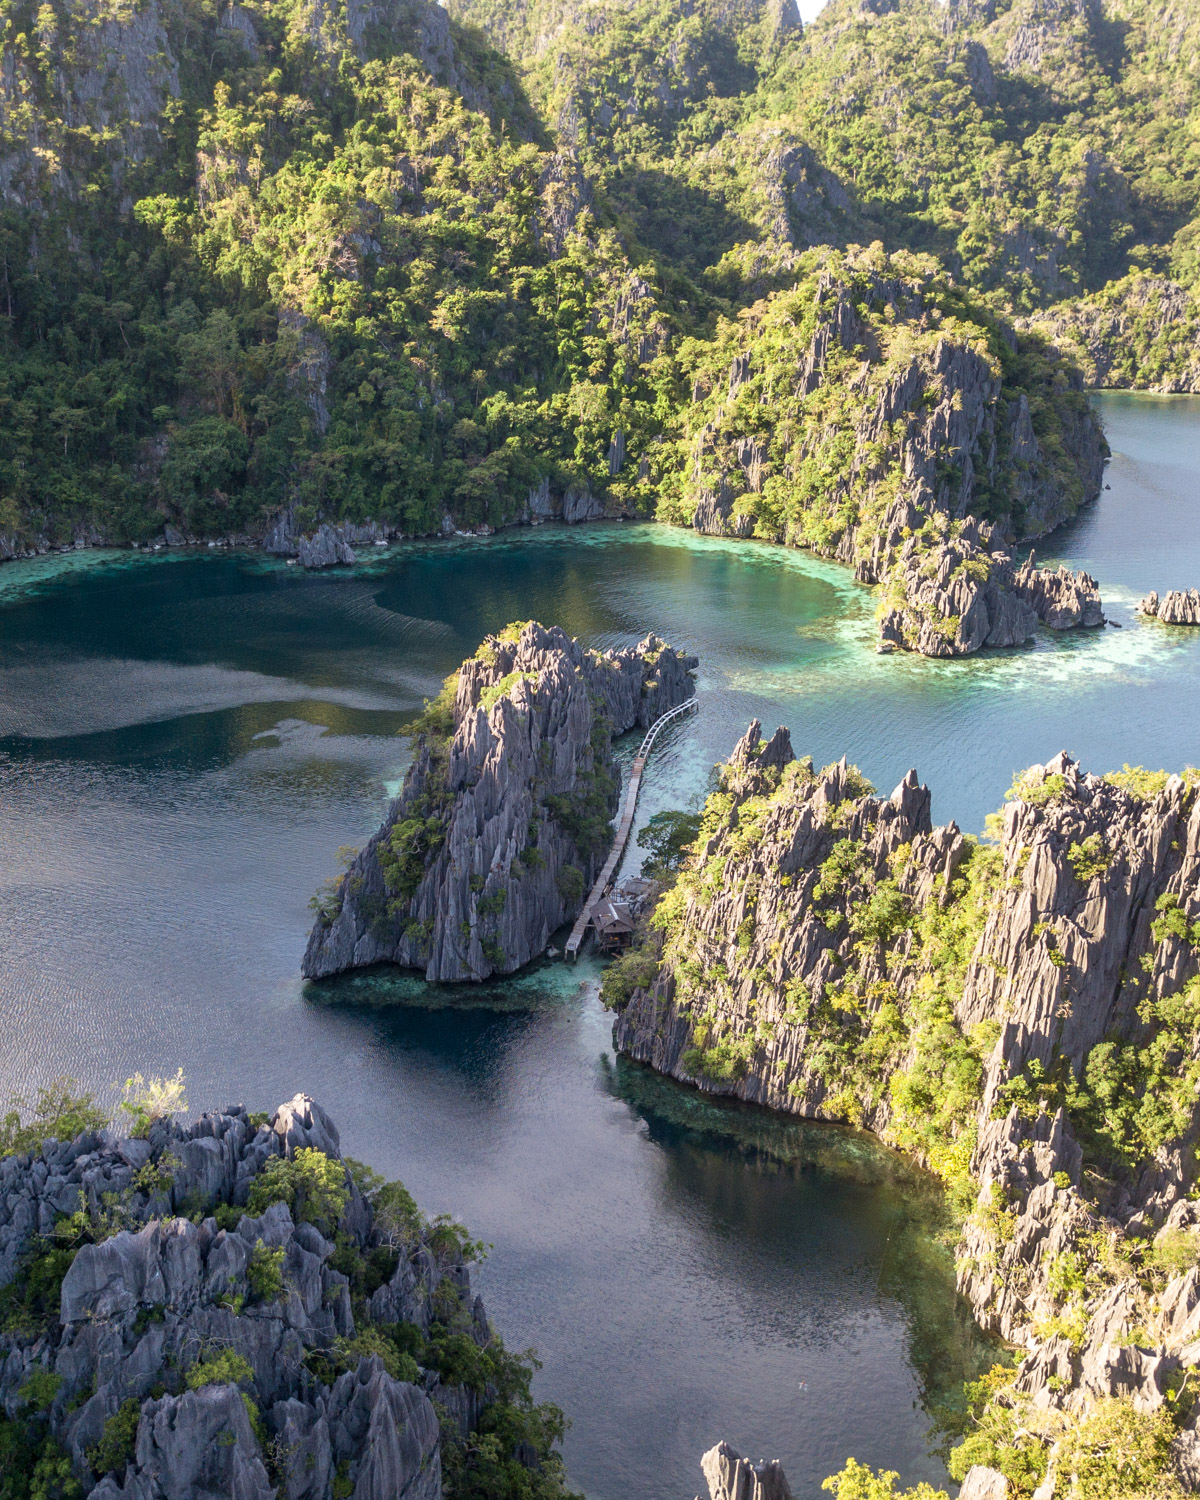 Twin Lagoon, Coron Palawan - How to visit this stunning place